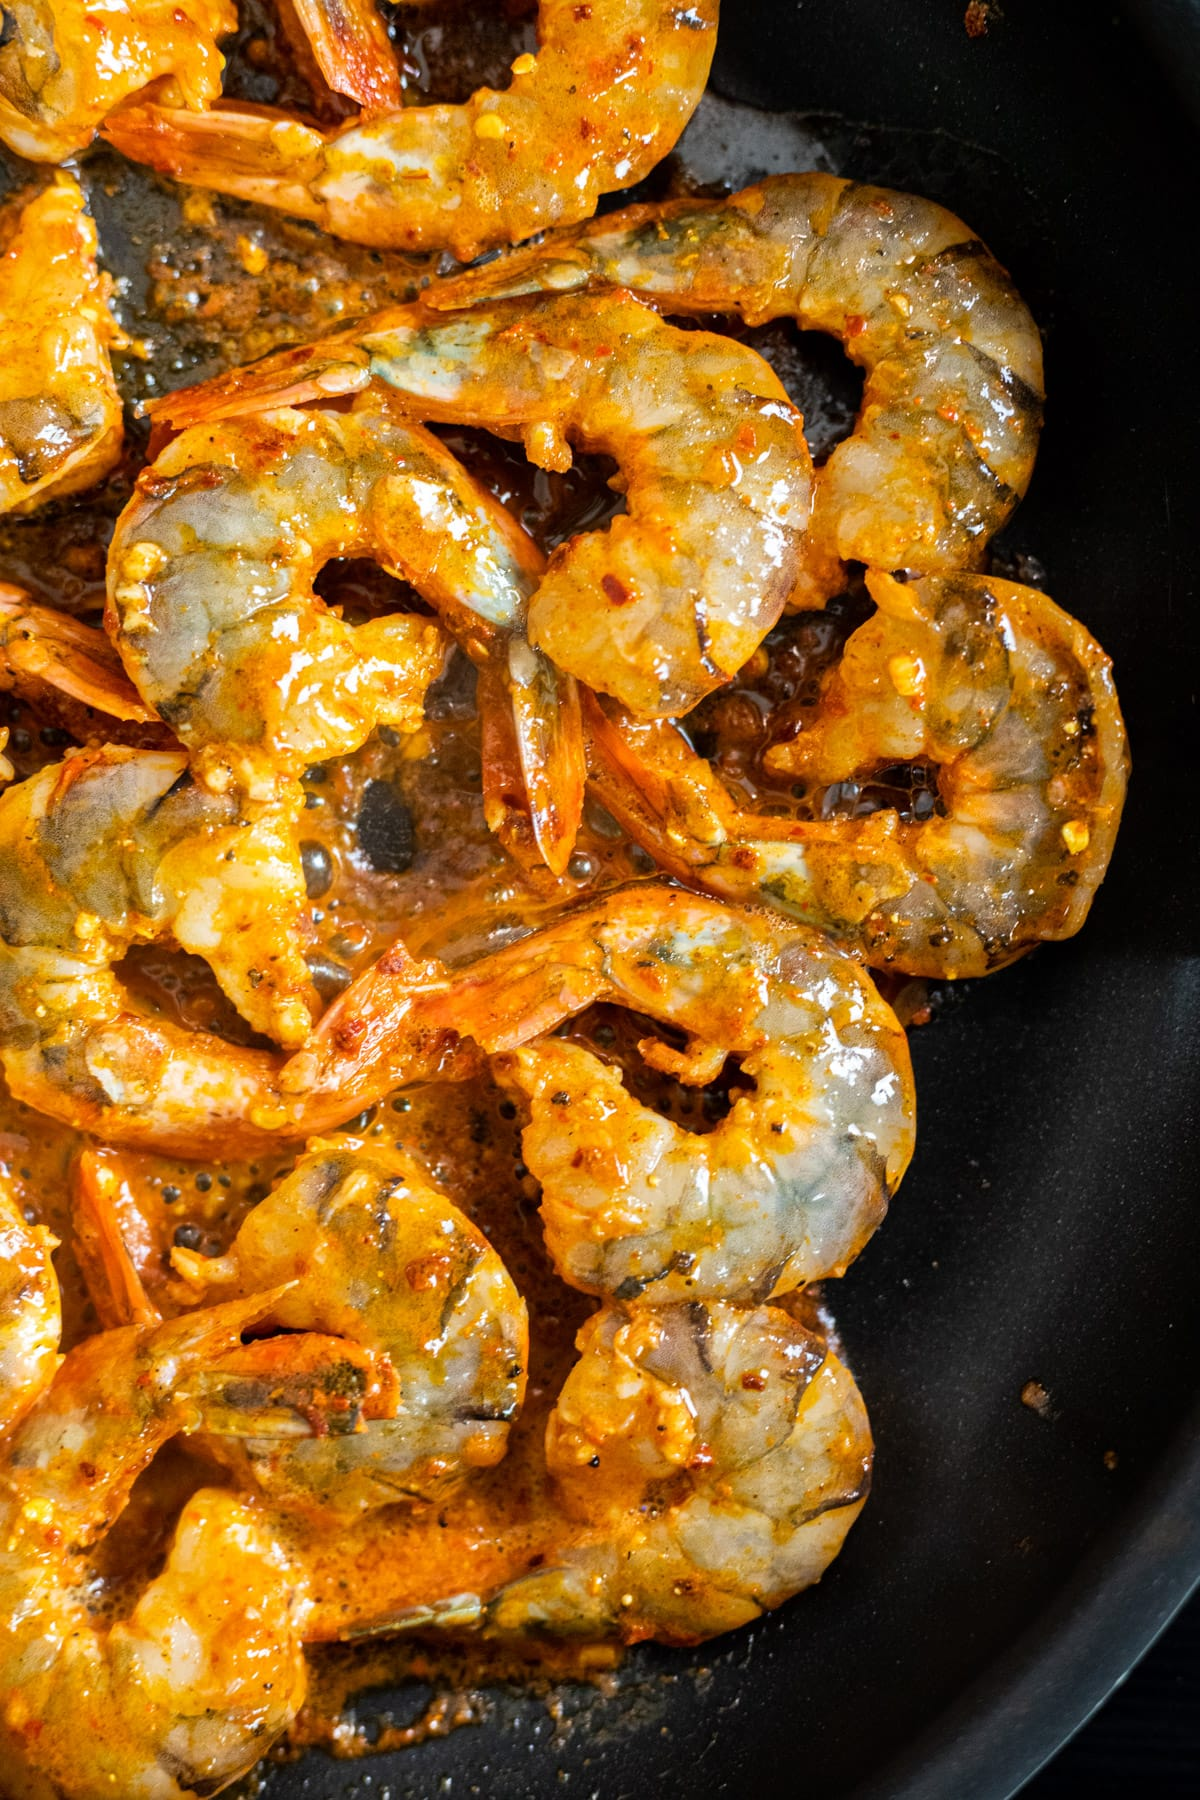 Chili seasoned shrimp cooking in a skillet.